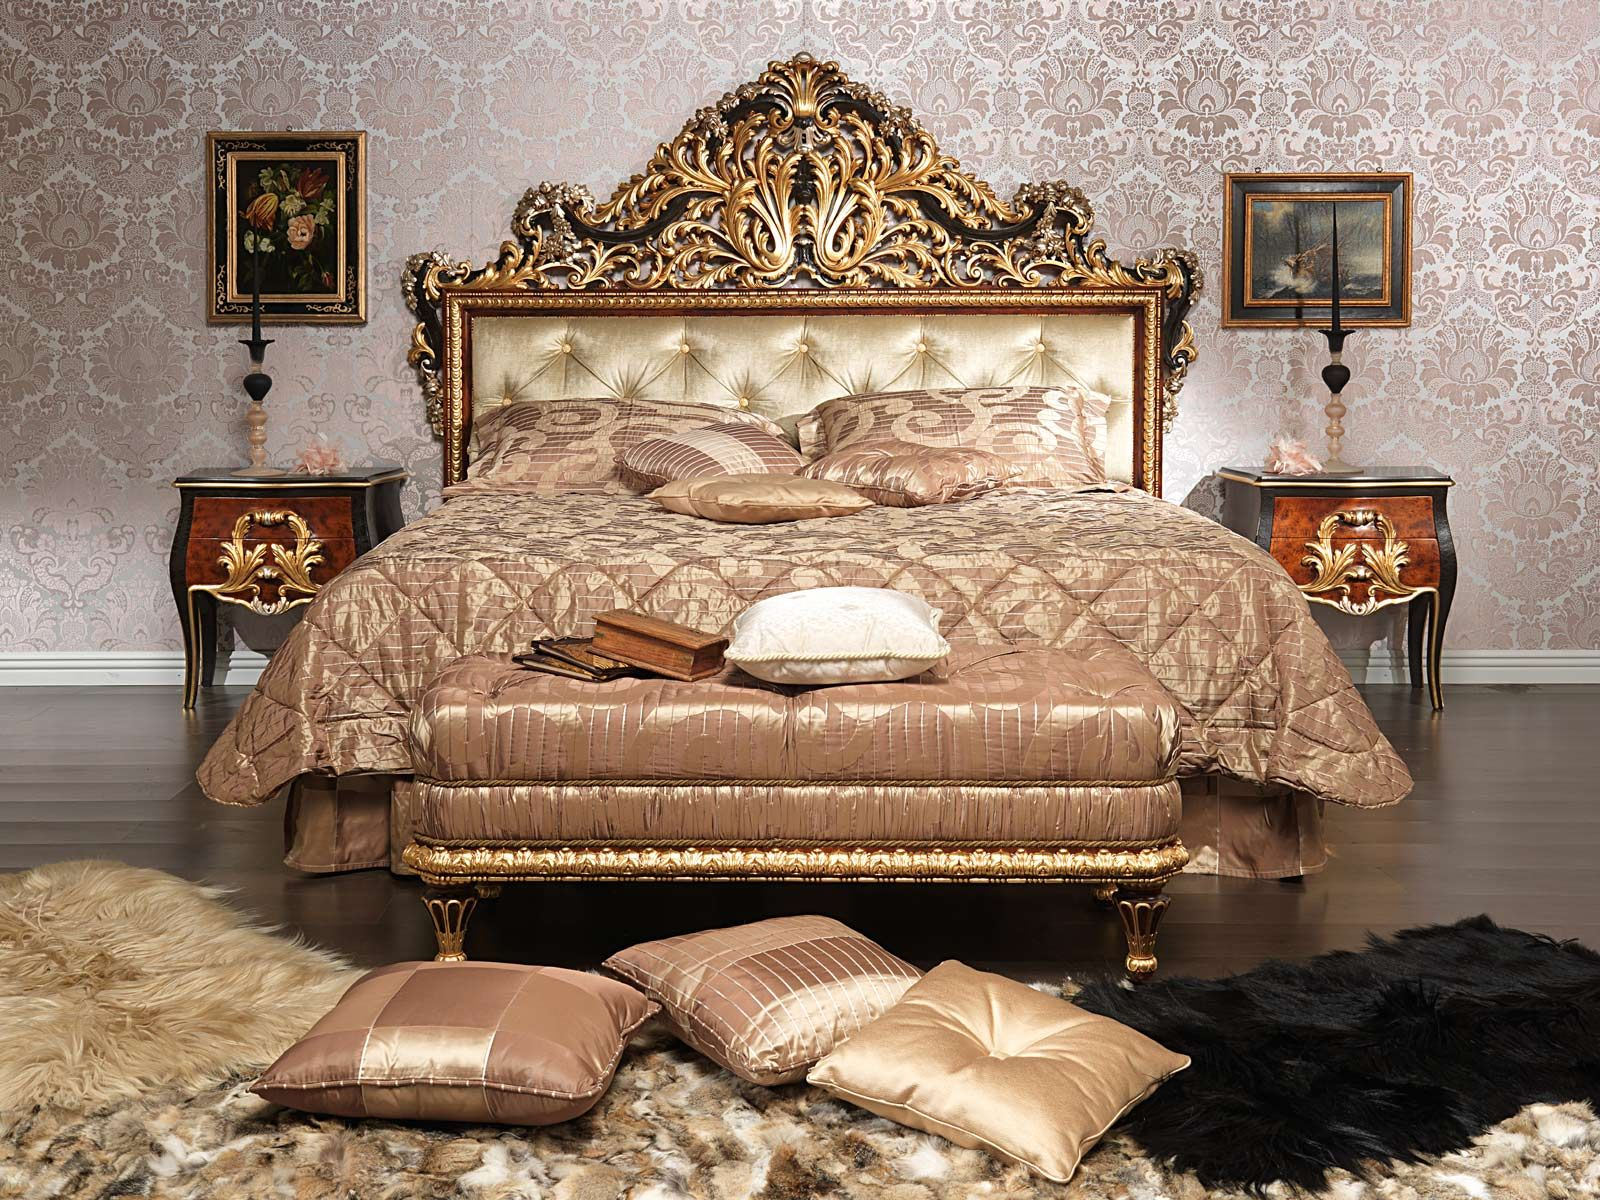 Deluxe Classic Italian Made Furniture By Vimercati Meda Classic Luxury Bedroom